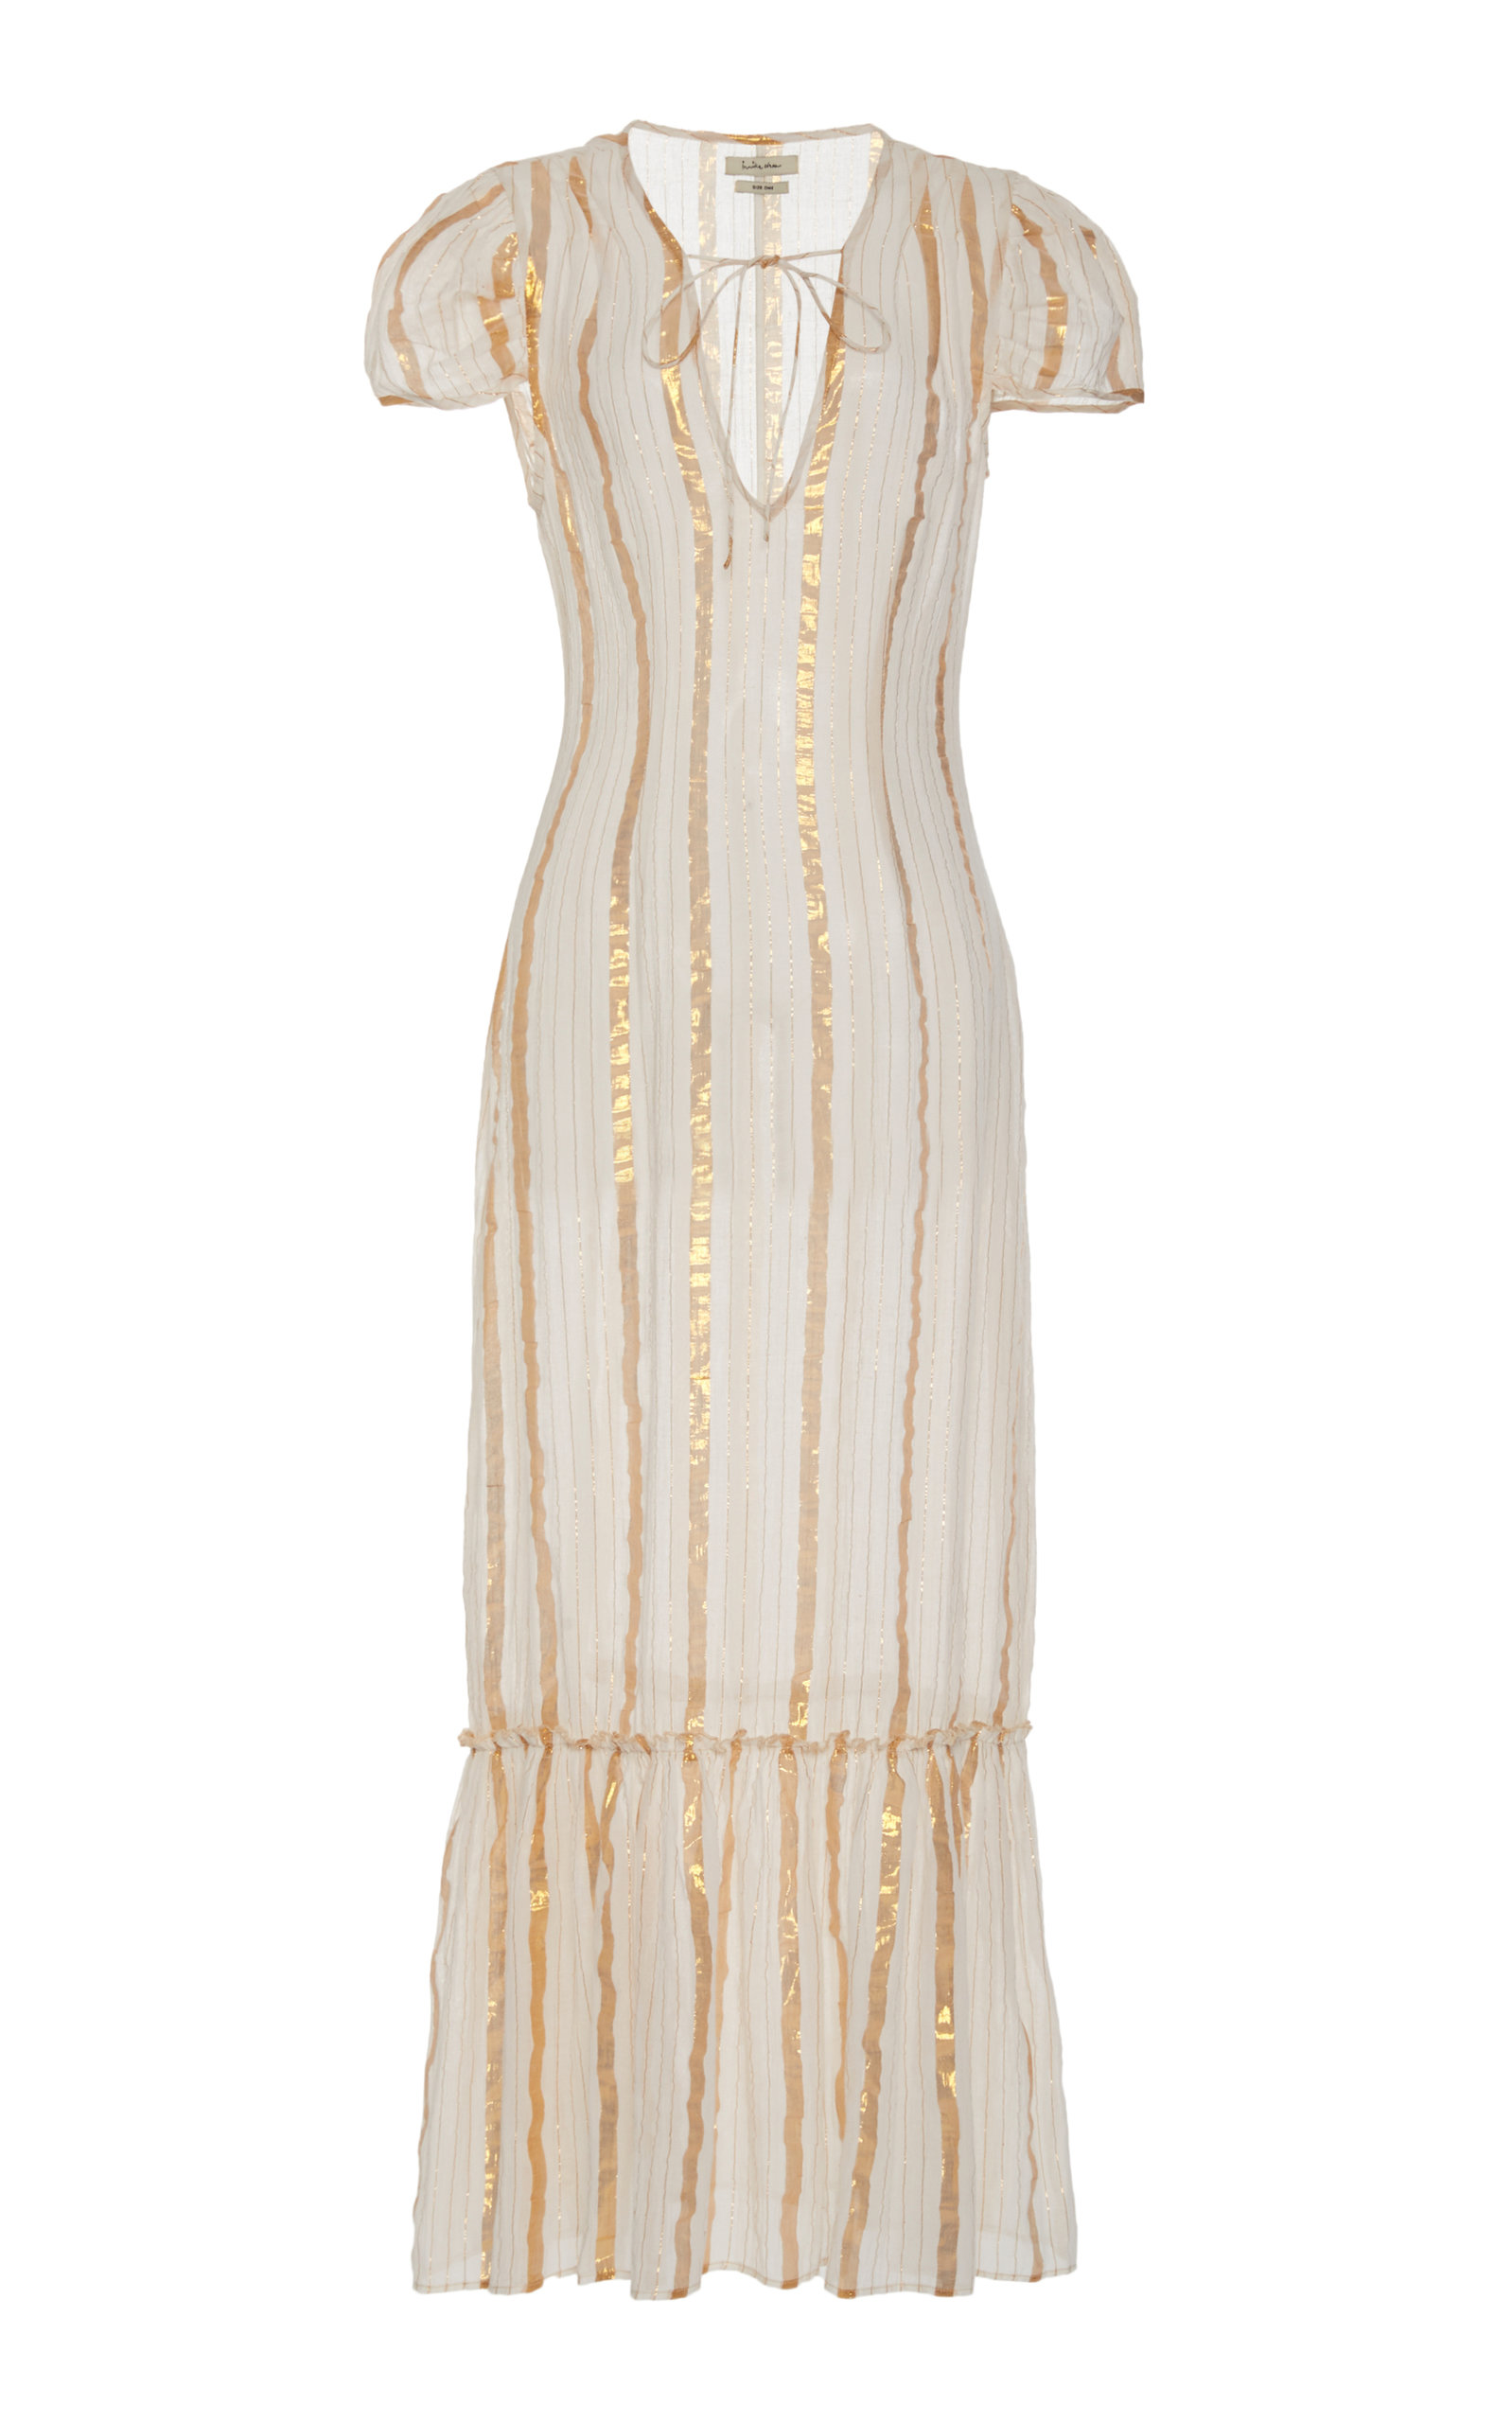 Buy Innika Choo Delle Ichus Cotton-Blend Maxi Dress online, shop Innika Choo at the best price